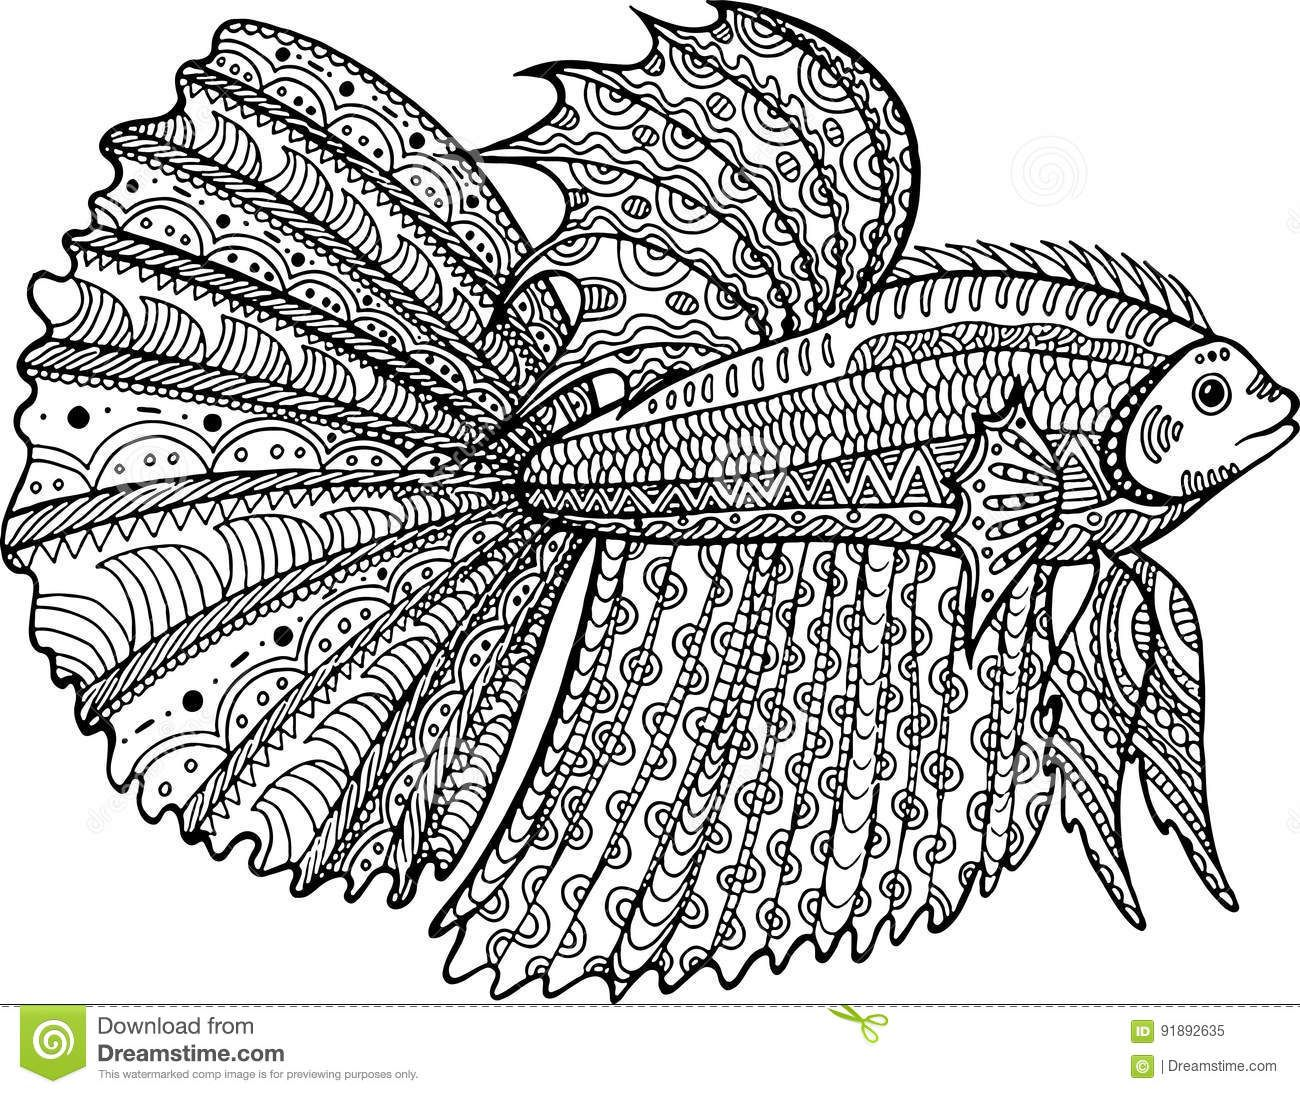 Pin By Dreamstime Stock Photos On Coloring Pages Start Creating